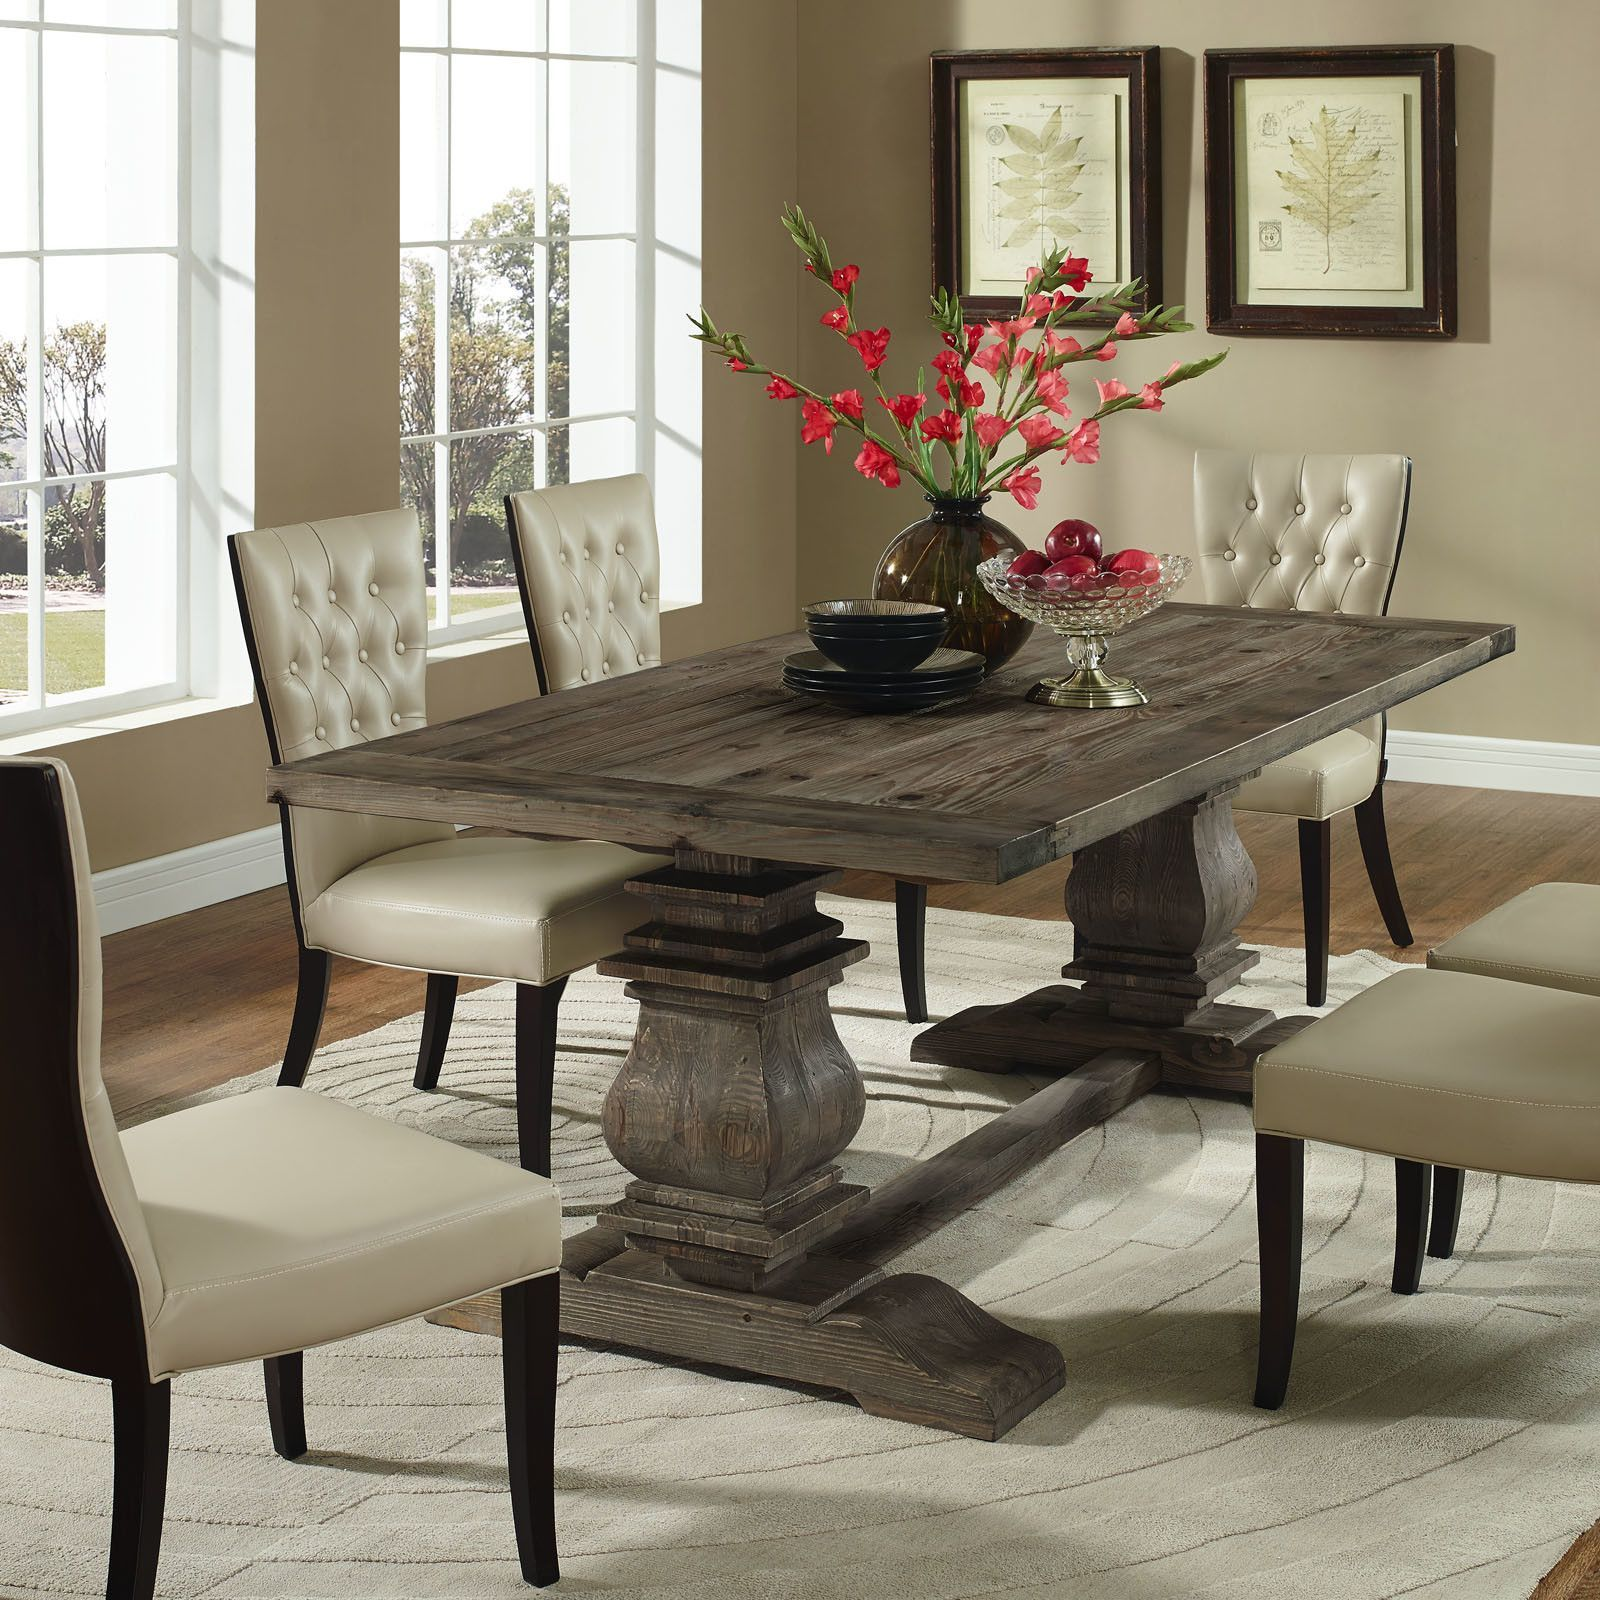 Modway List Dining Table Dining Room Table Centerpieces Farmhouse Dining Table Rustic Dining Room